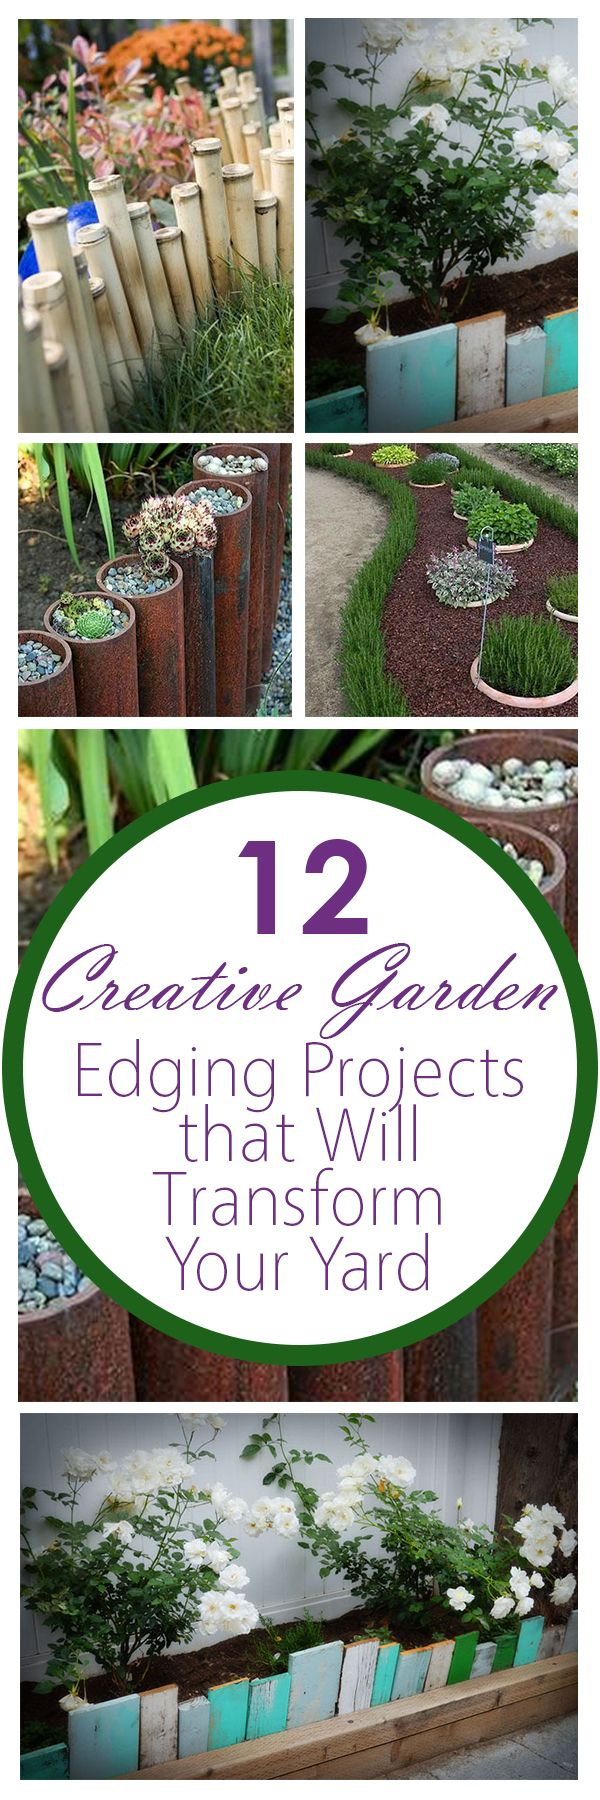 12 Creative Garden Edging Projects that Will Transform Your Yard ...